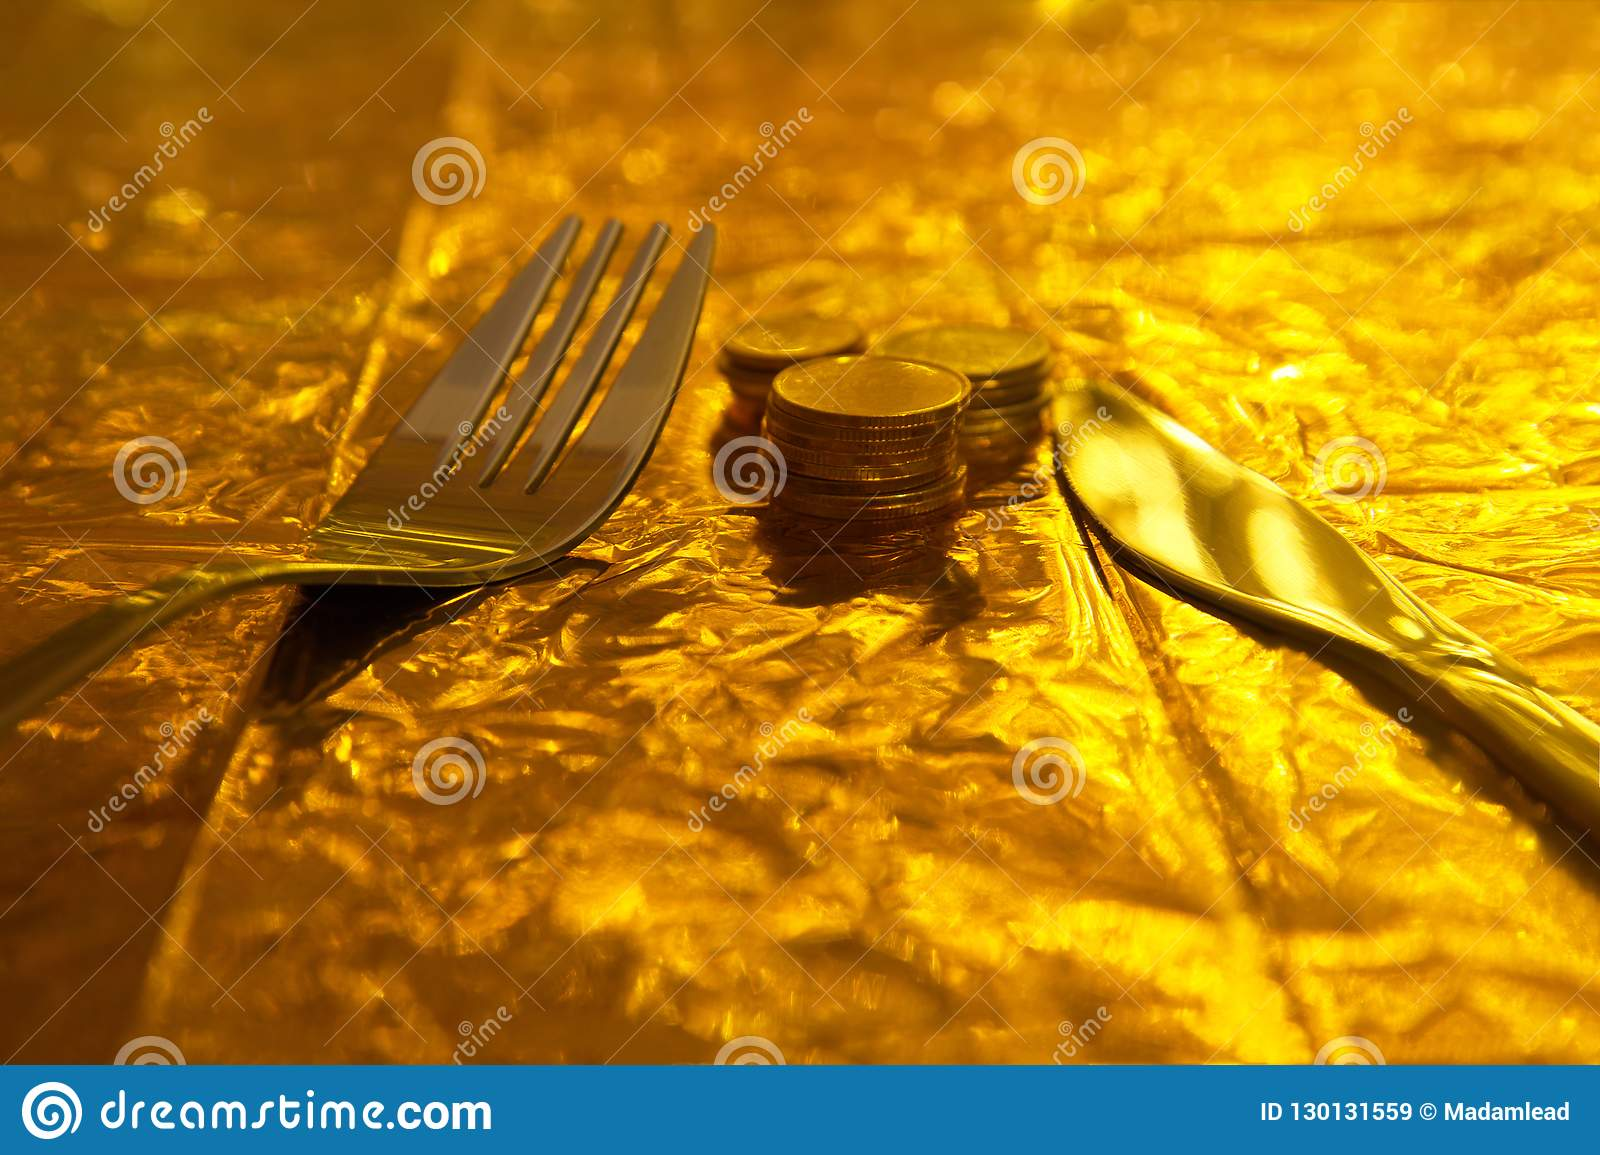 Silver fork and knife with coin money on gold background concept